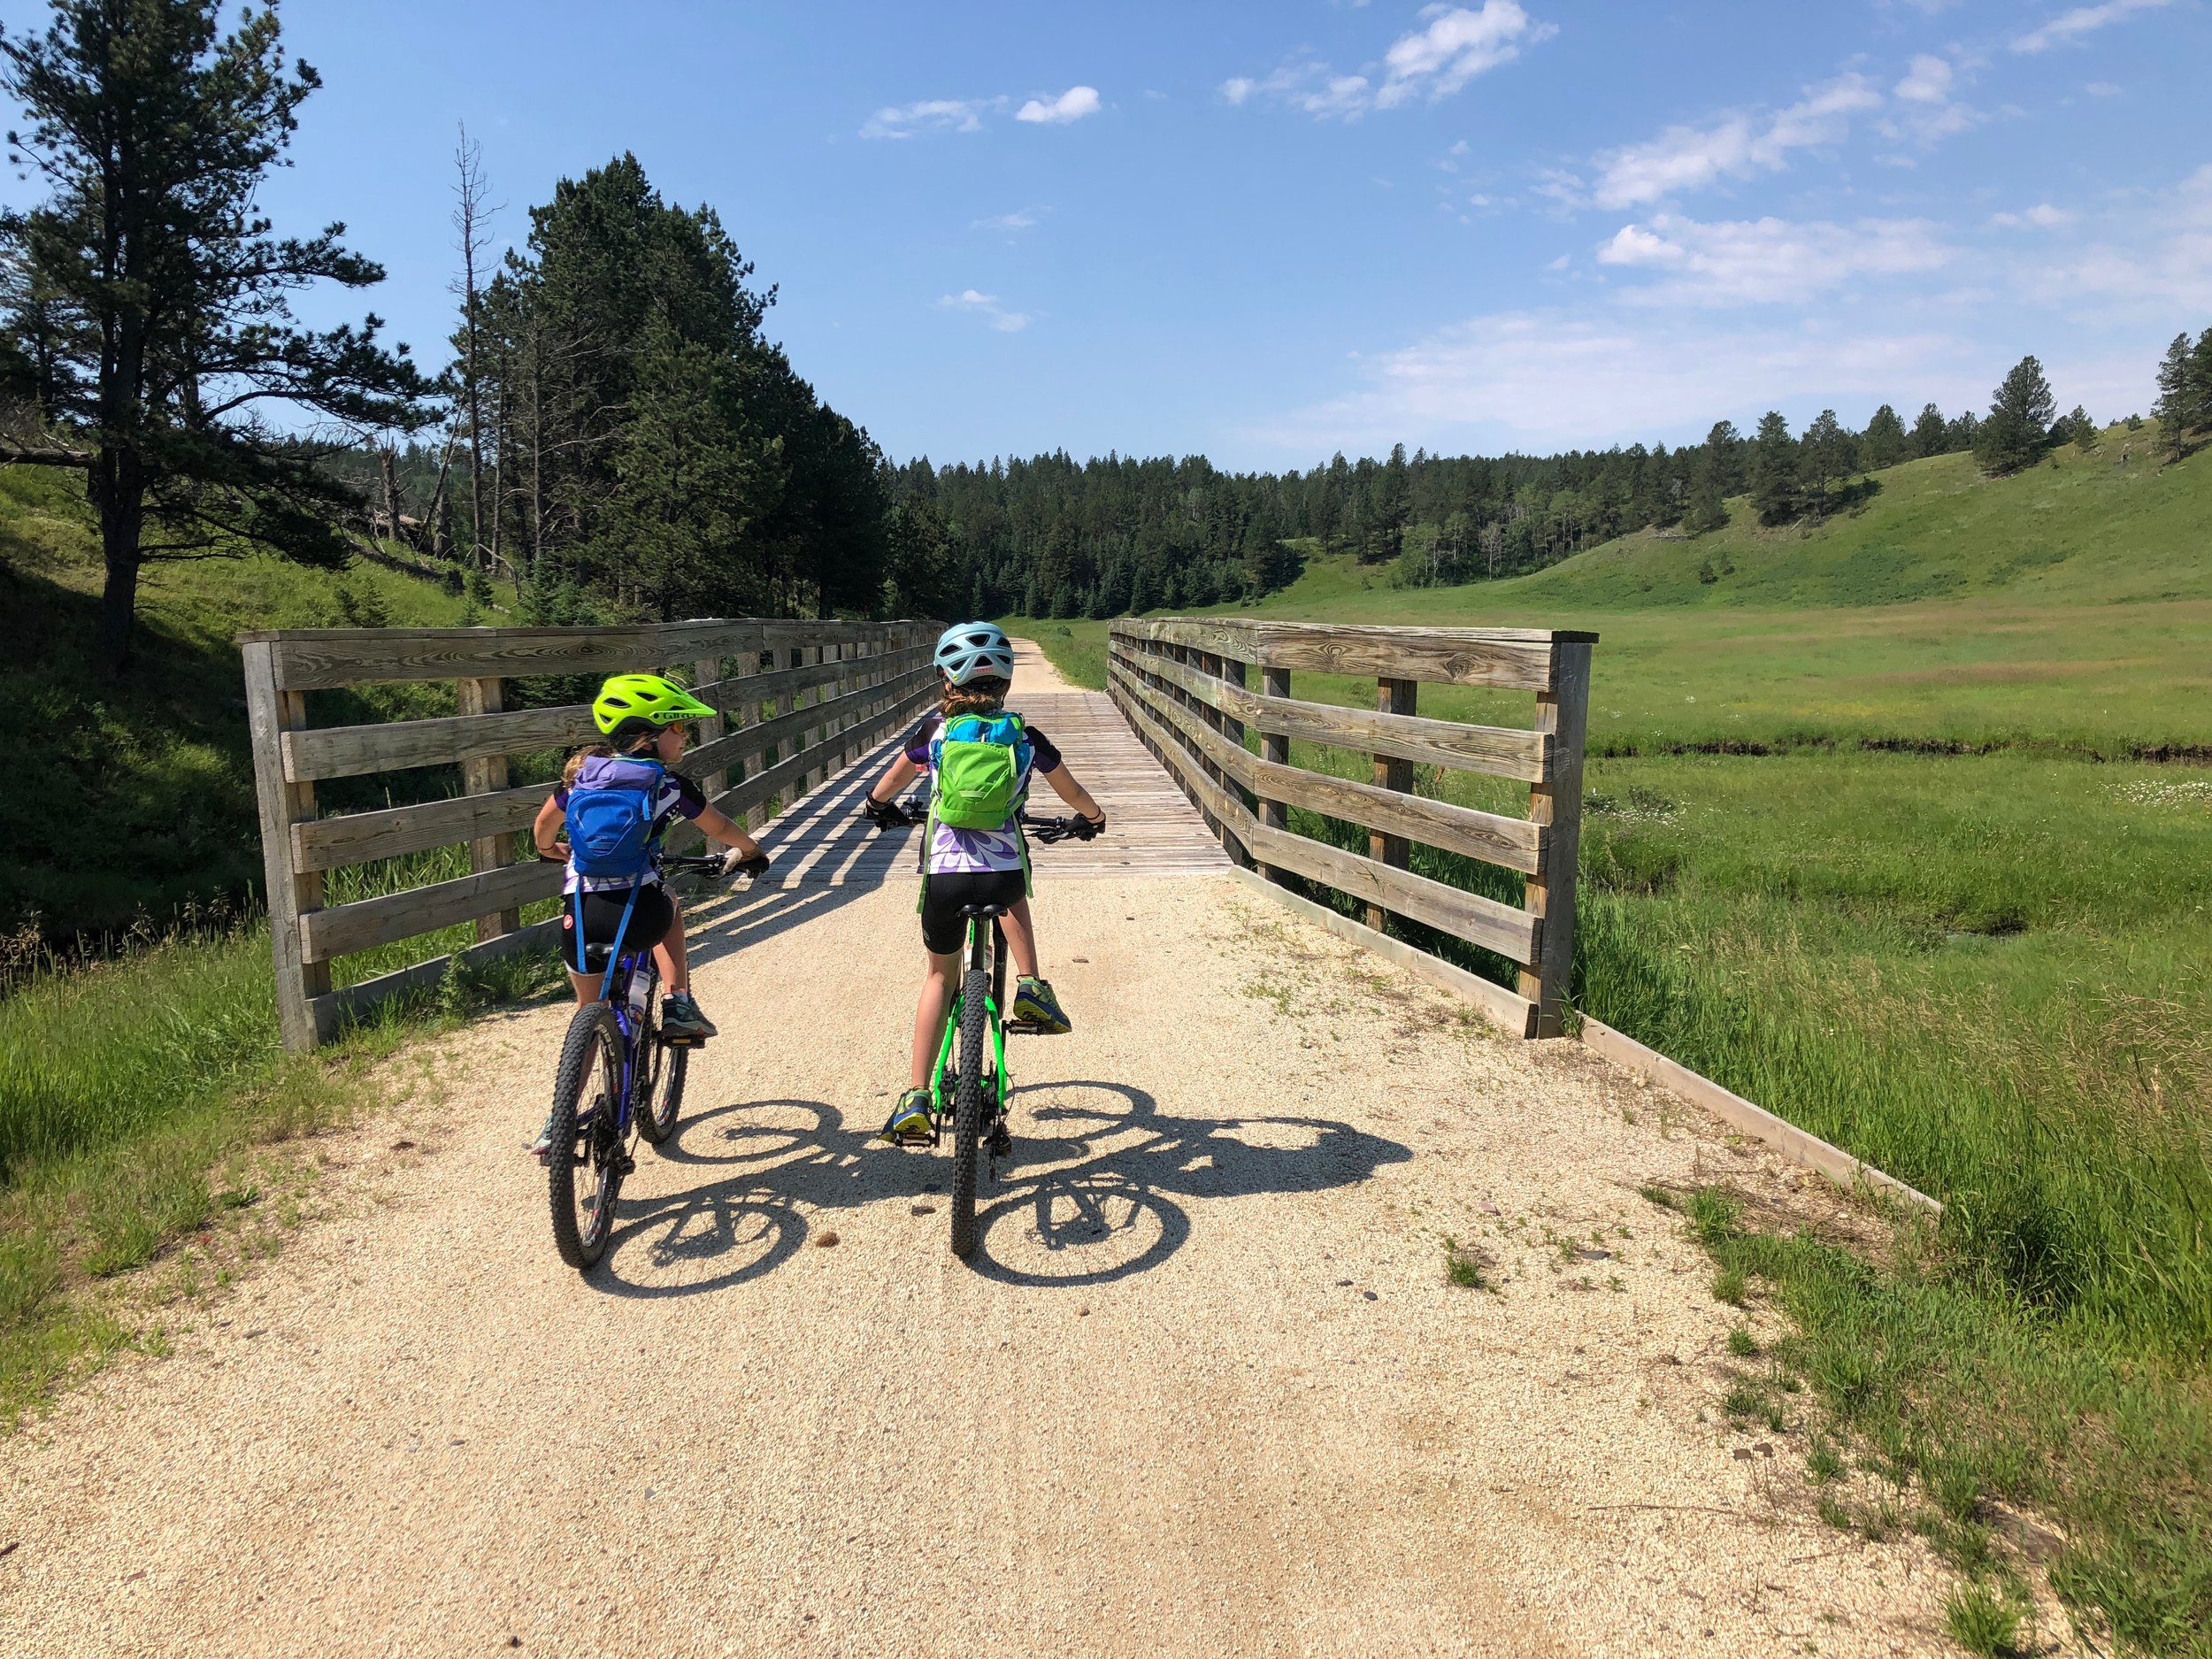 John and I spent a lot of the time riding with each of the girls, but we also got to ride side by side which gave us an opportunity to watch the girls chatting and enjoying themselves. Moments like these make my heart SING!!